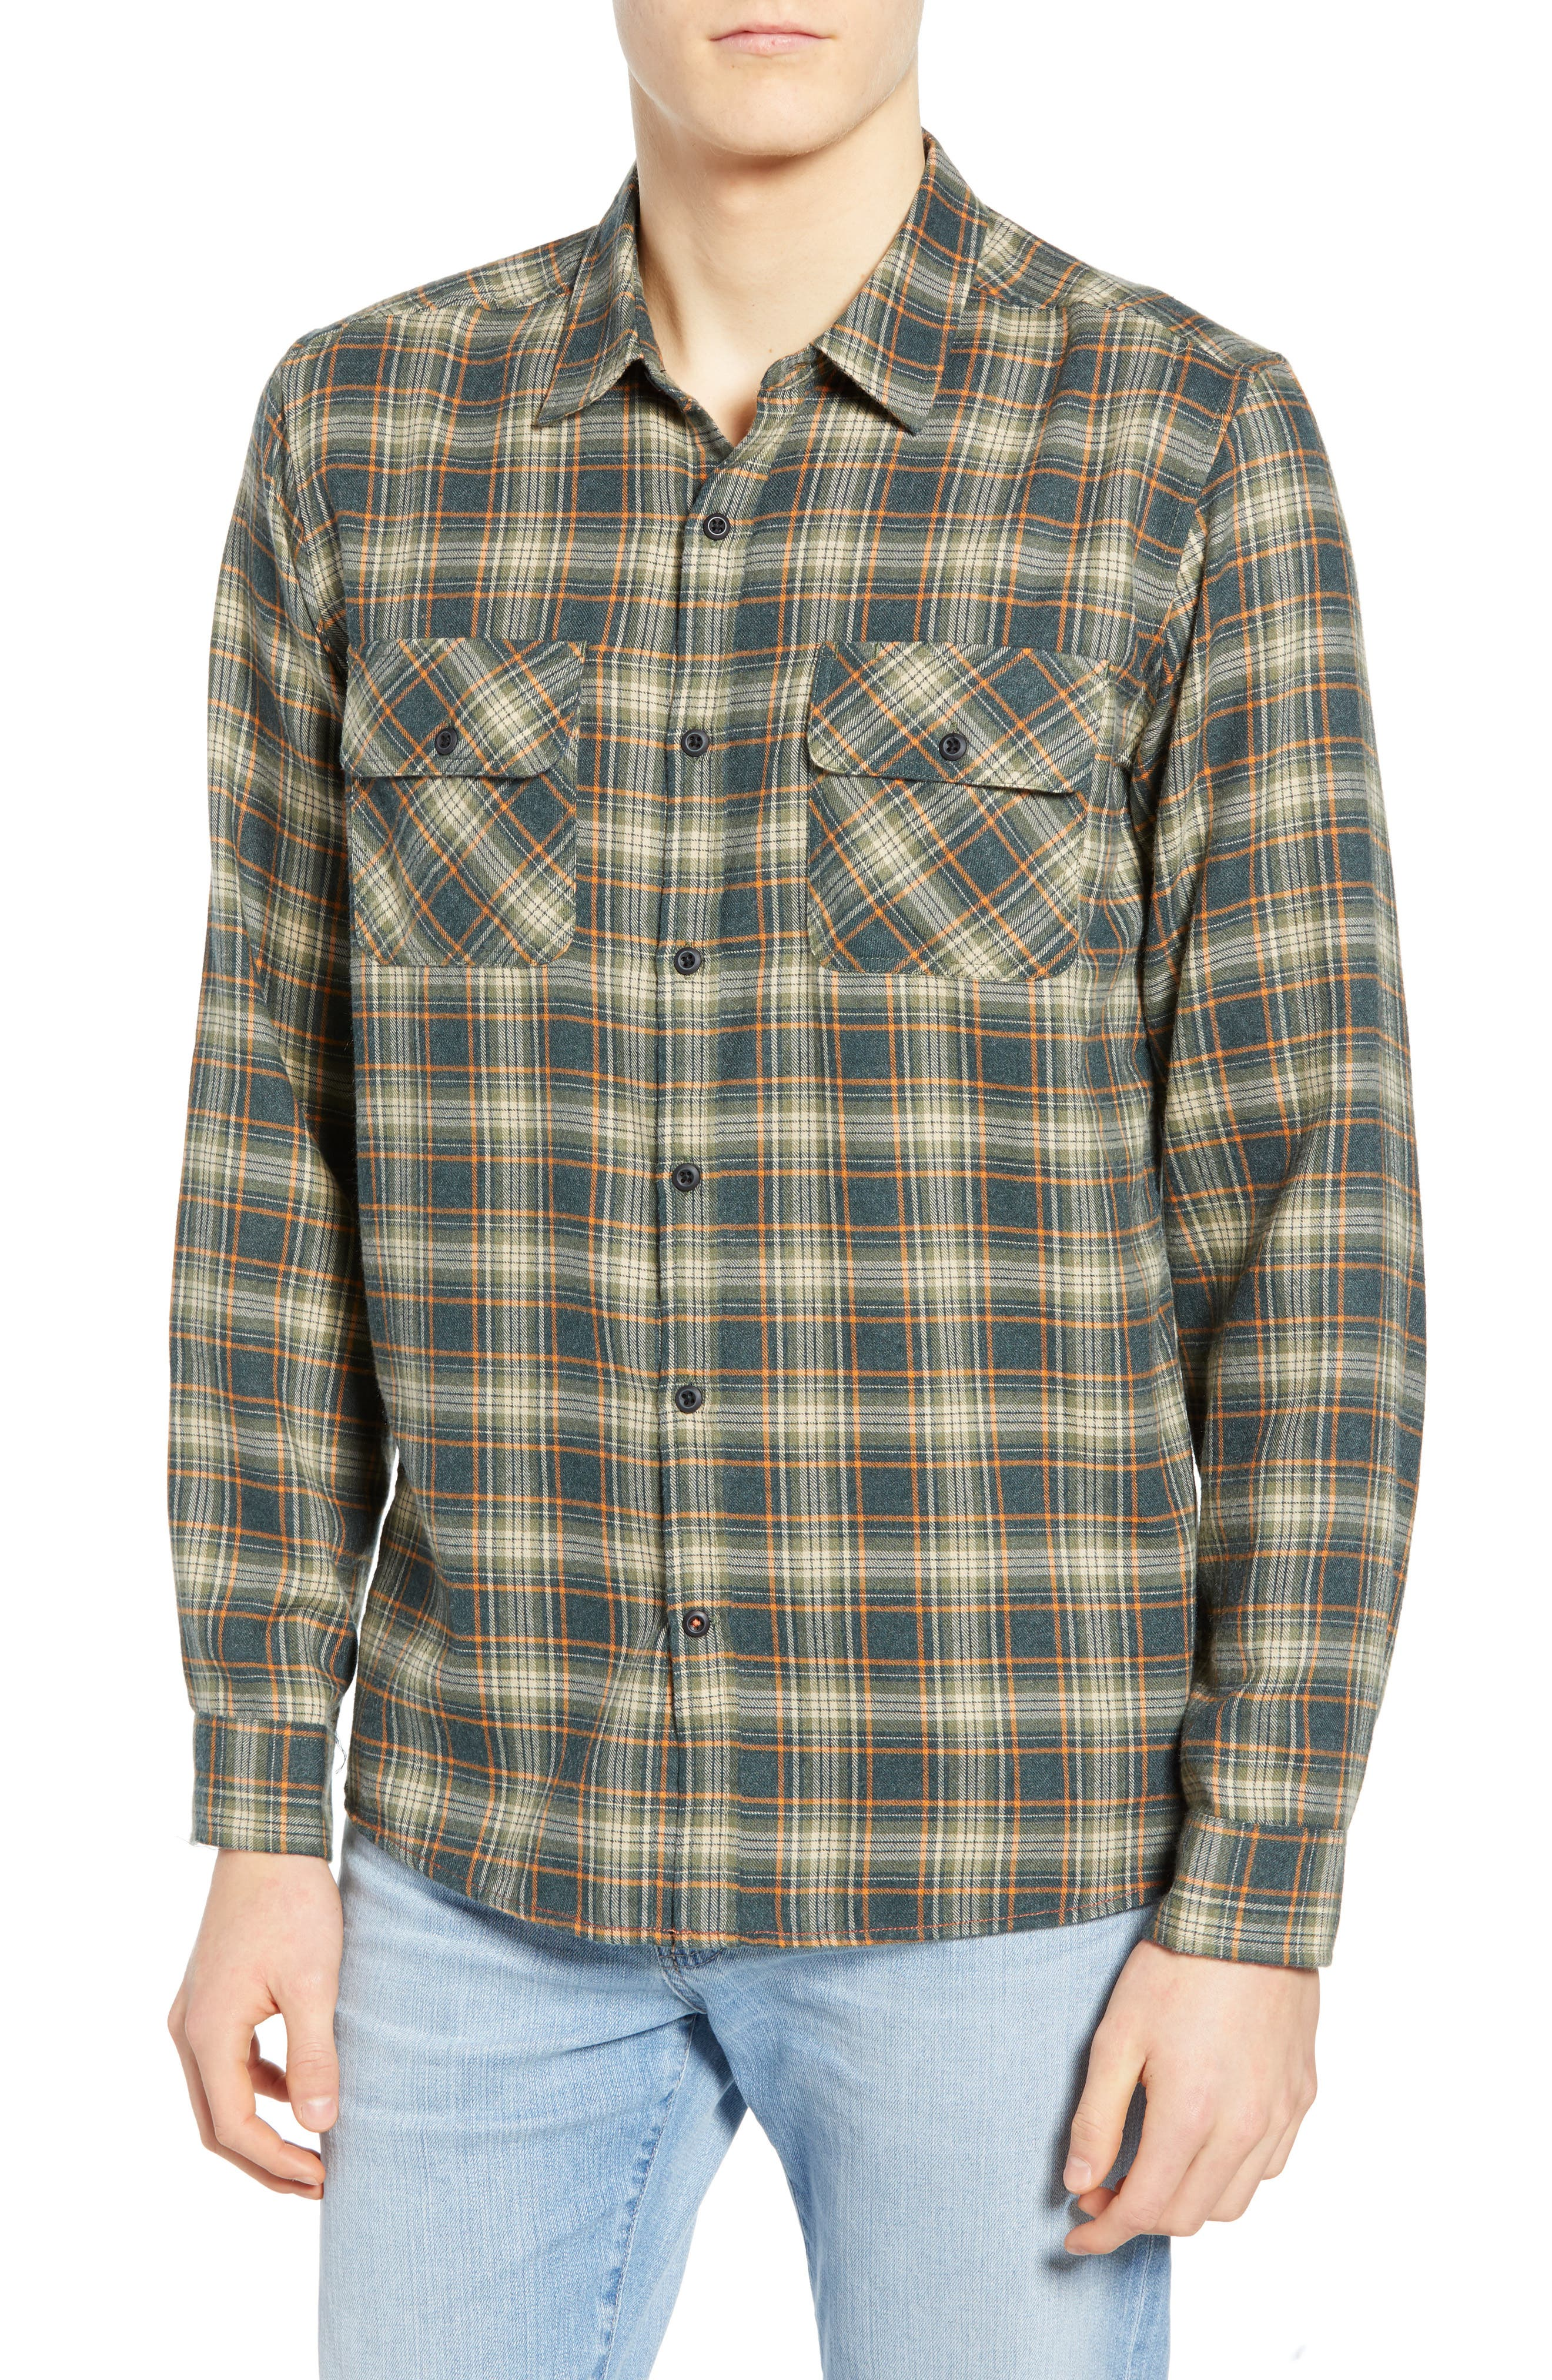 Hurley Walker Plaid Flannel Shirt, Green